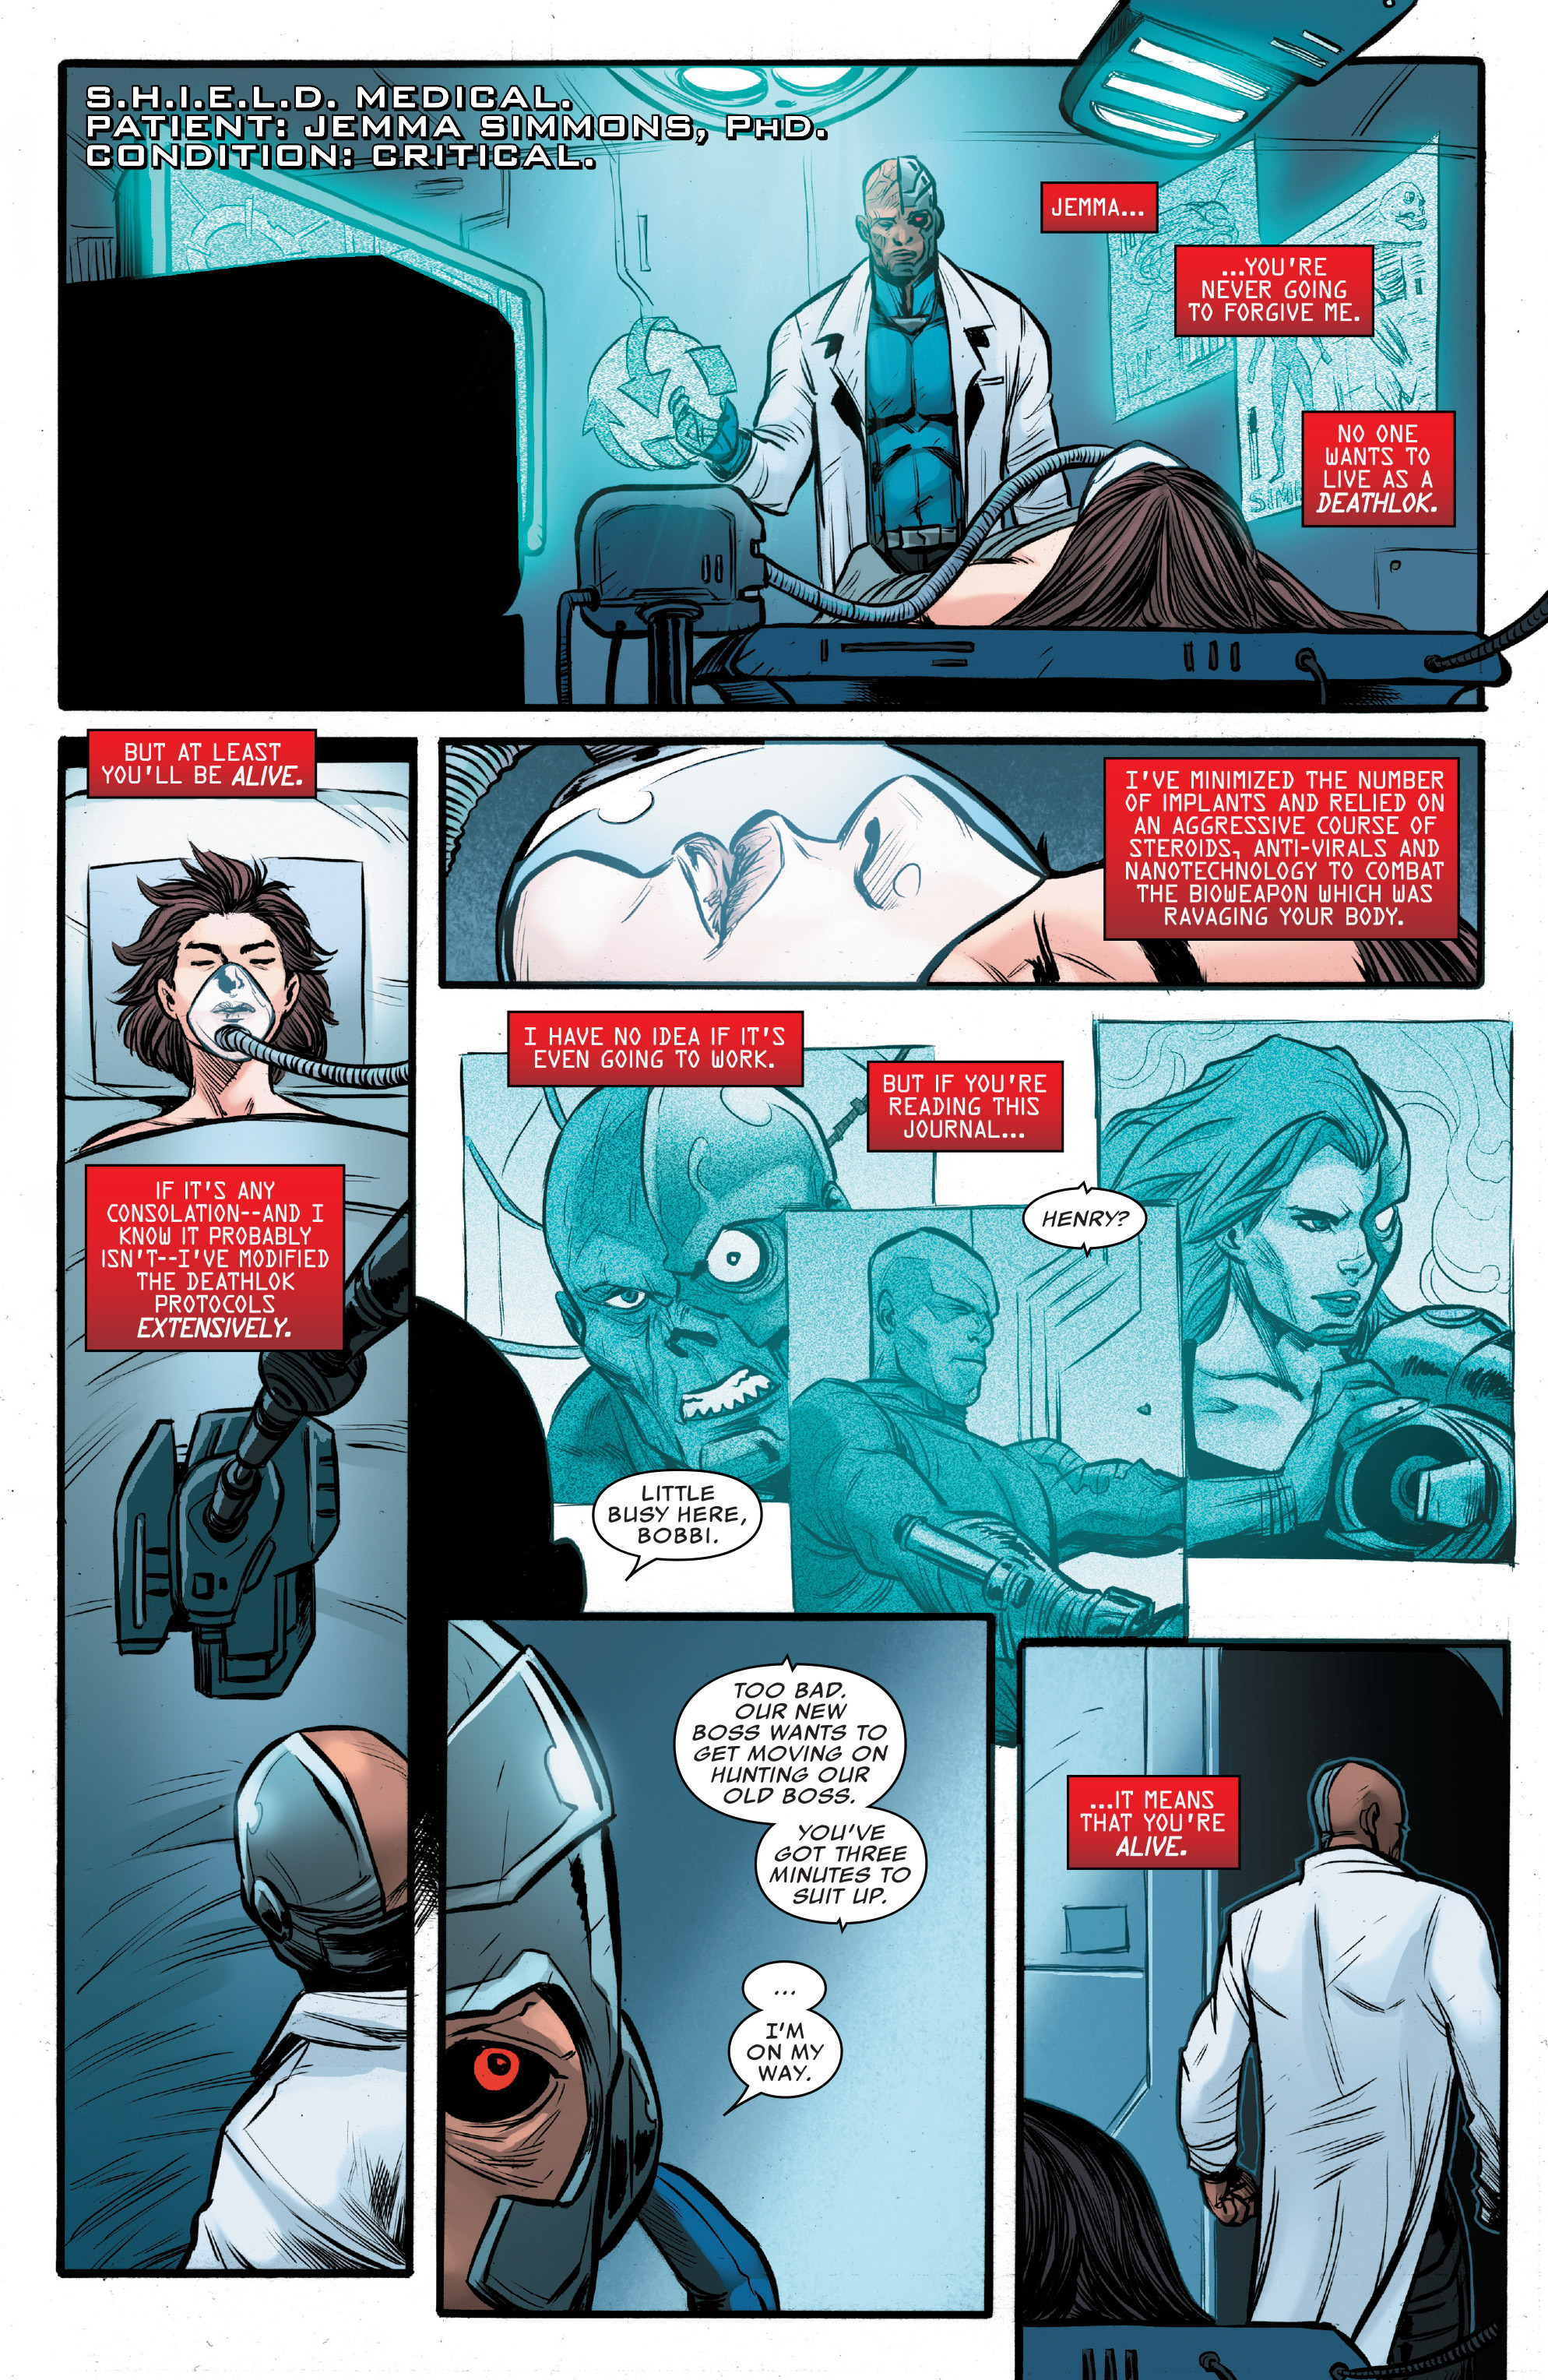 Read online Agents of S.H.I.E.L.D. comic -  Issue #9 - 12